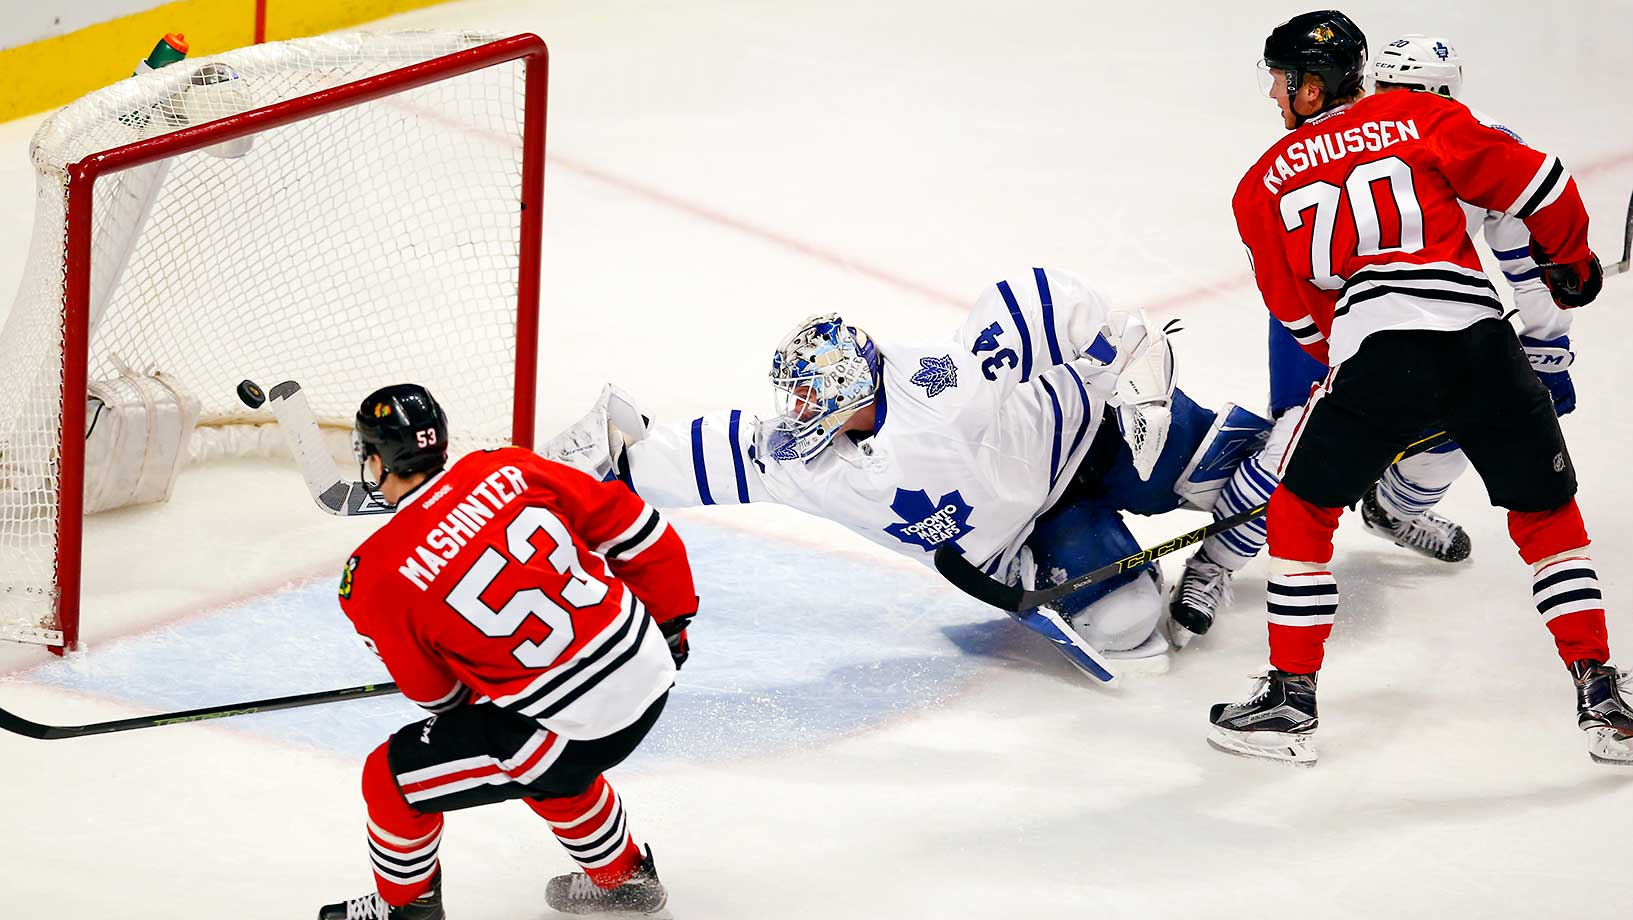 Toronto goalie James Reimer dives to make a save as Brandon Mashinter (53) and Dennis Rasmussen of the Chicago Blackhawks look on.